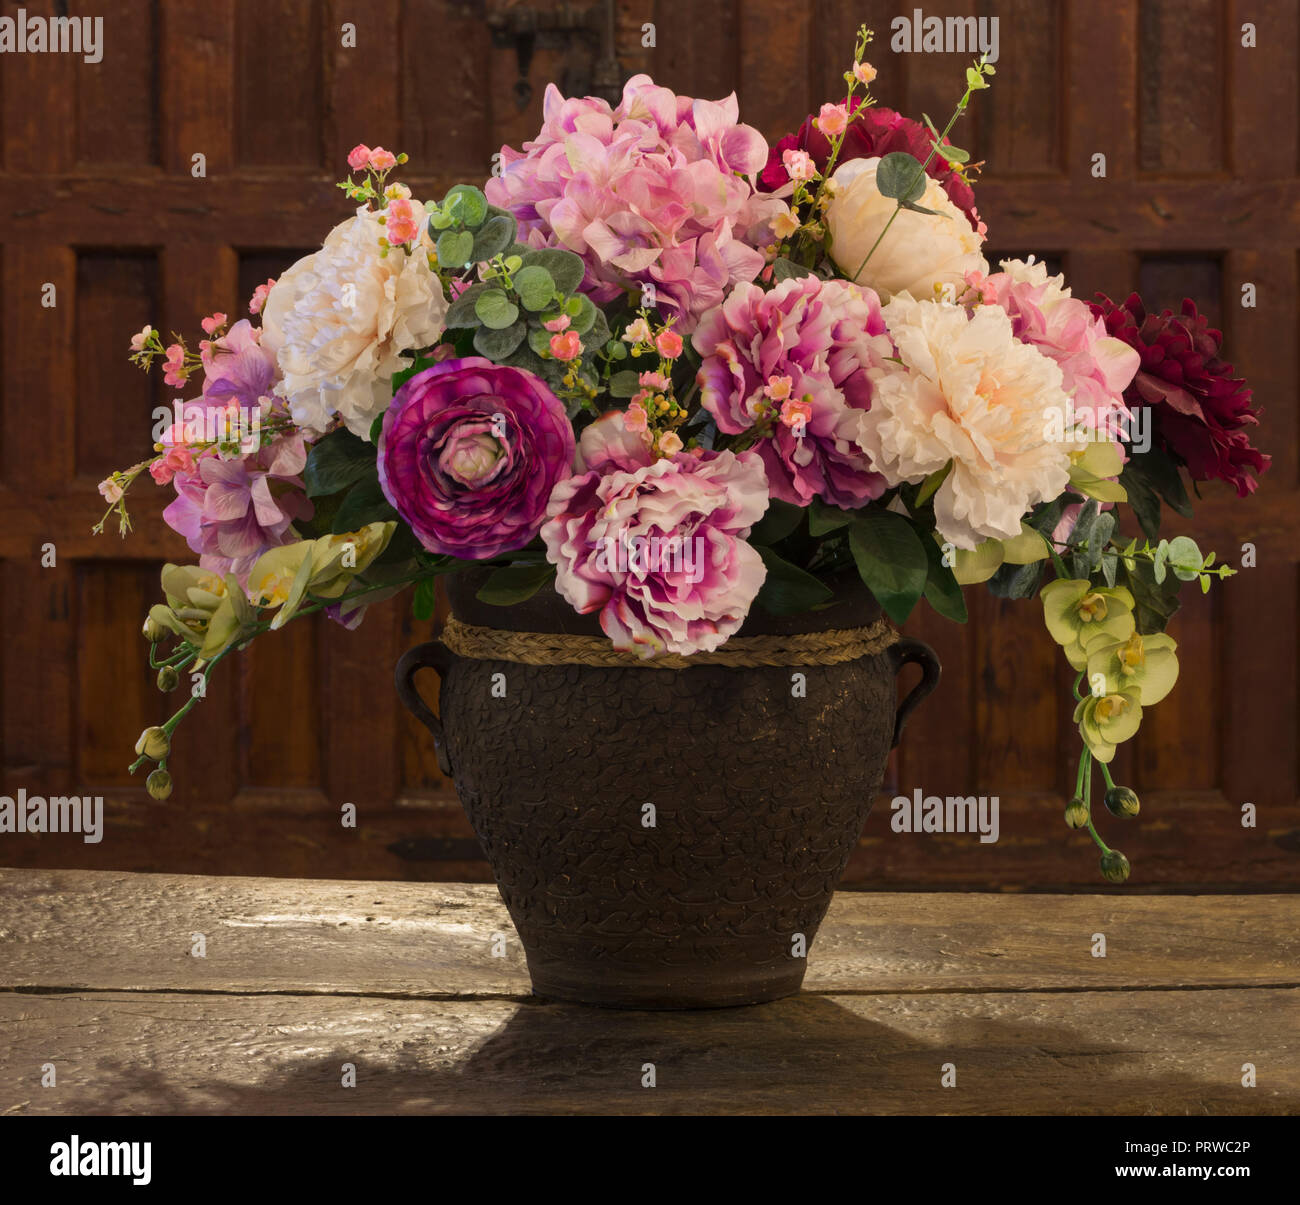 Flower arrangement in old vase on distressed table. Stock Photo